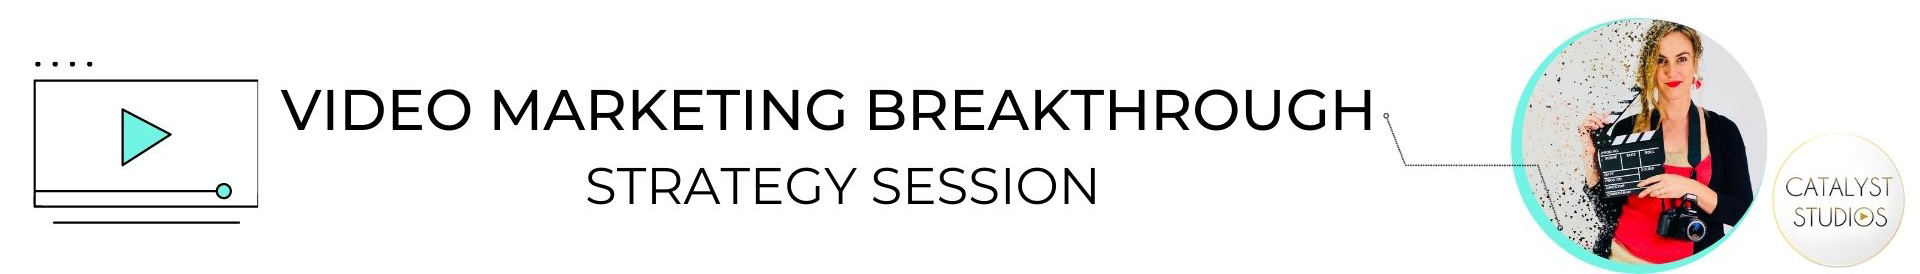 Video Marketing Breakthrough Strategy Session